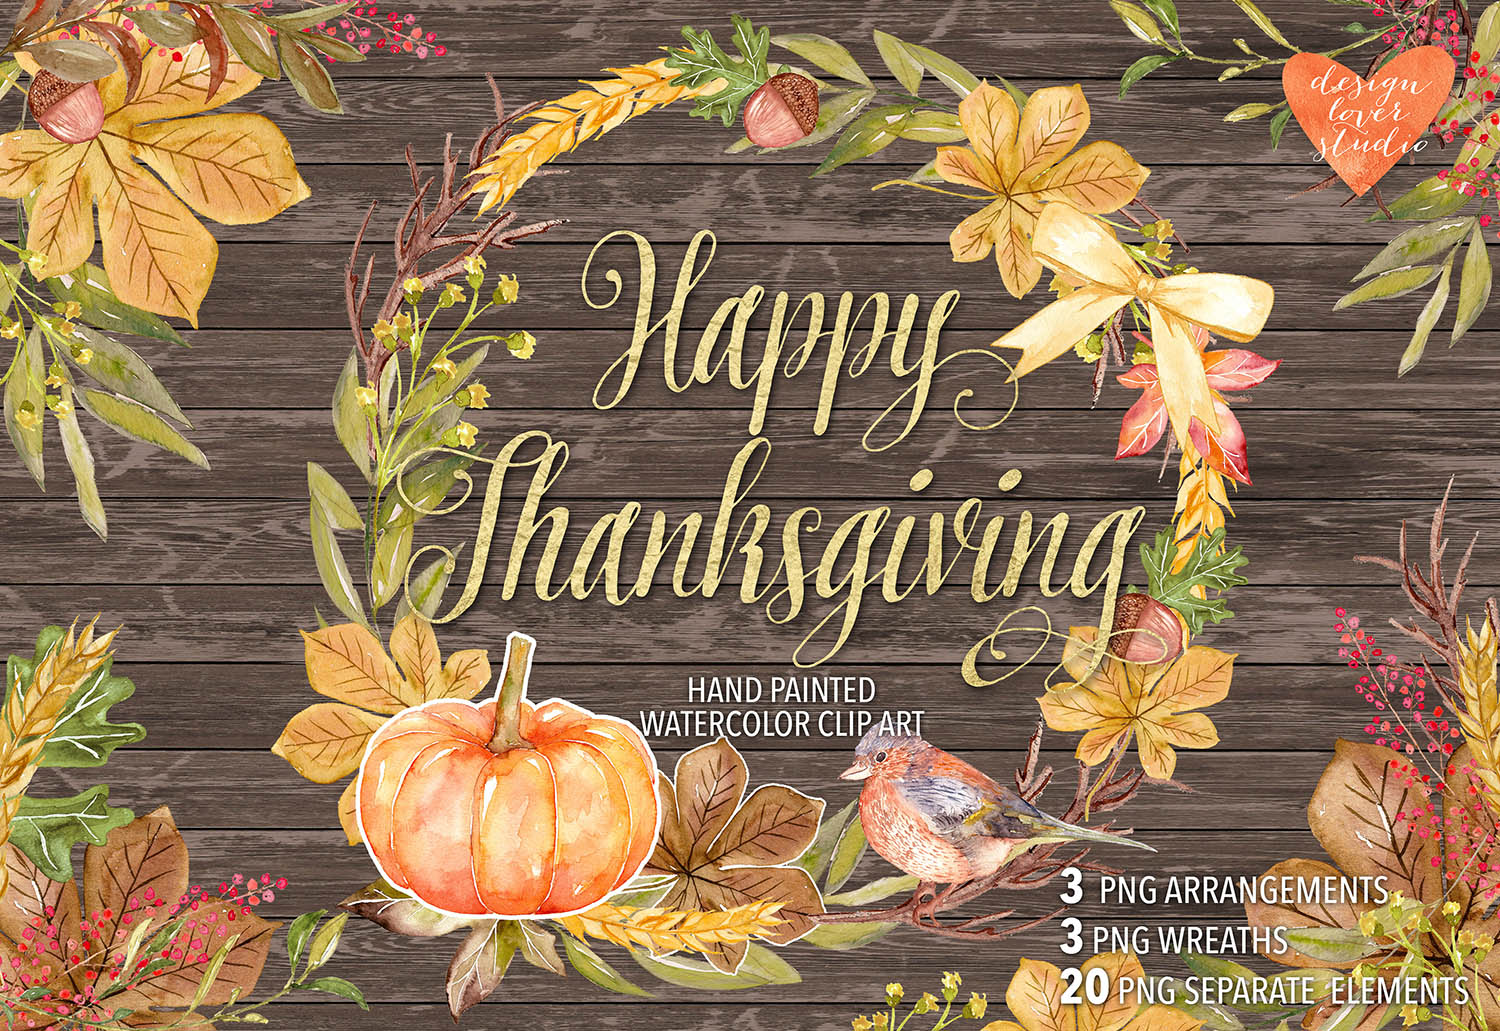 Watercolor Happy Thanksgiving cliparts example image 1